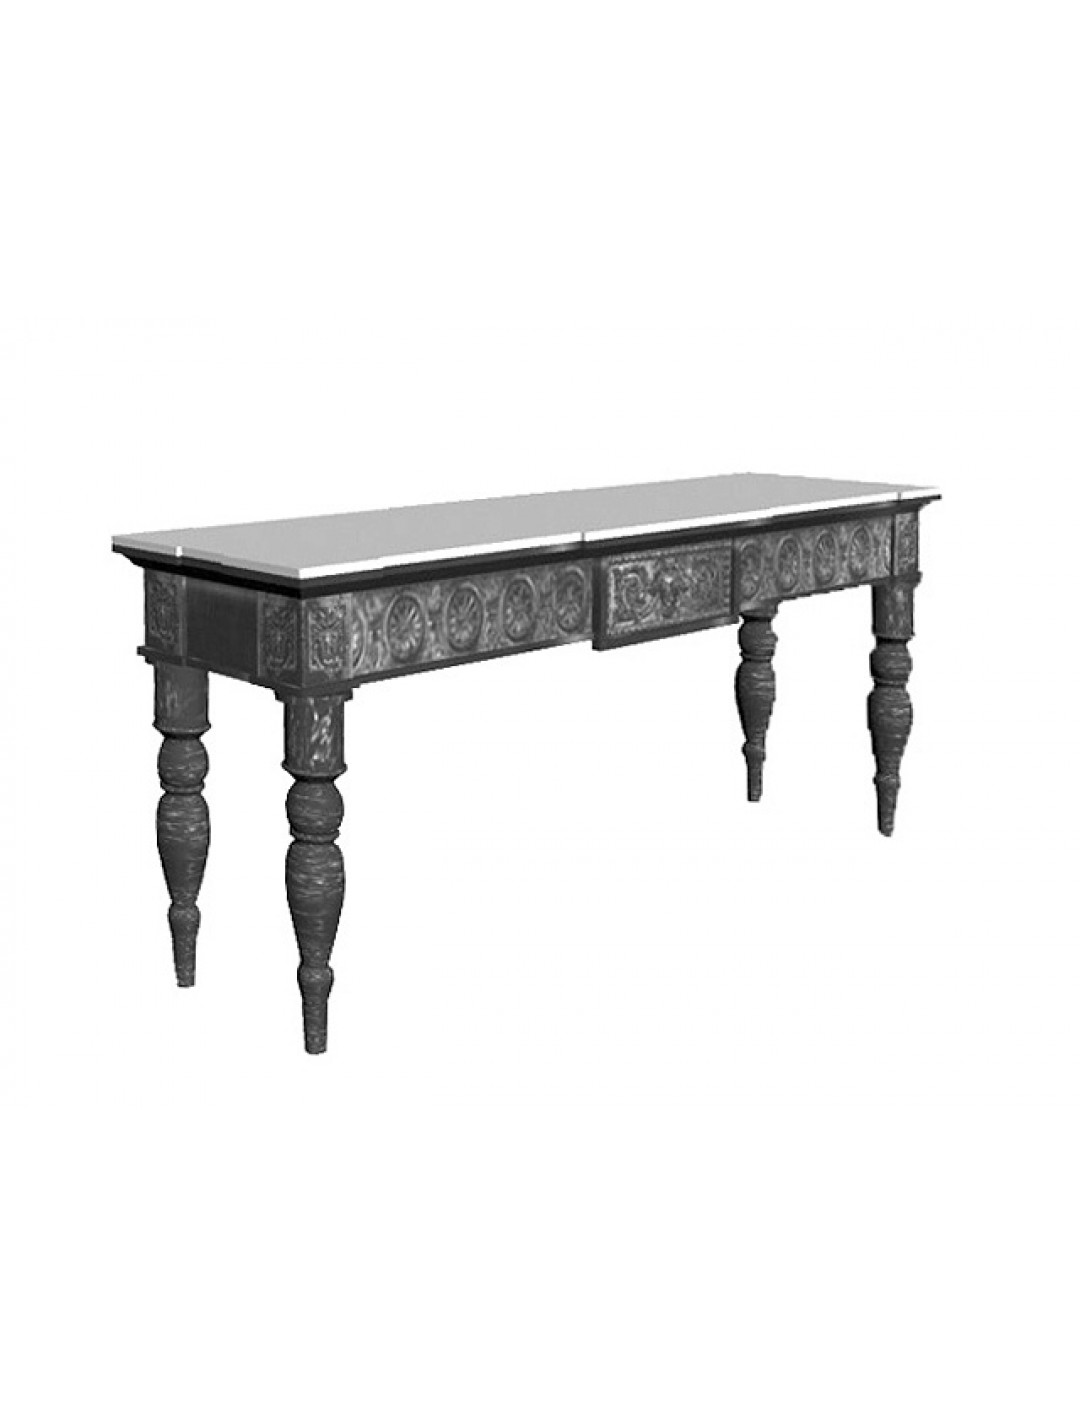 SOFIA CARVED WOOD CONSOLE BIG SIZE,200 CM